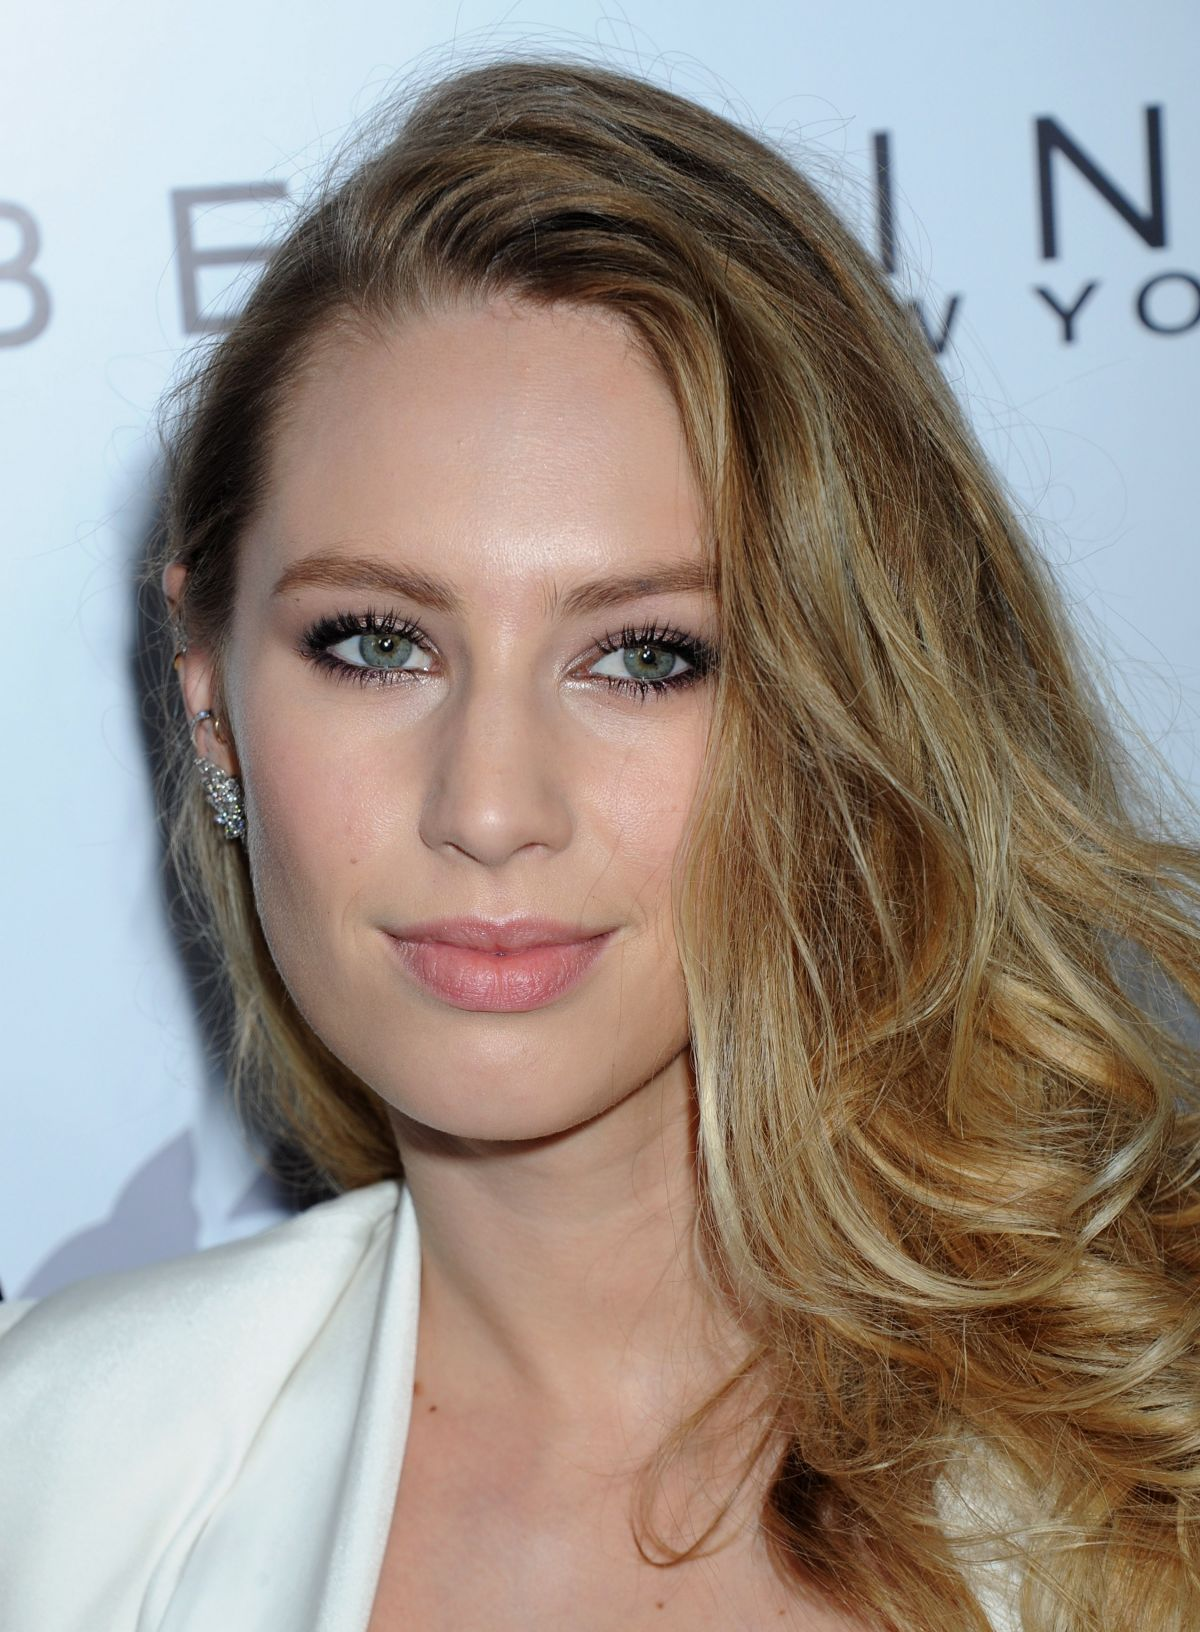 dylan penn at daily front row fashion los angeles awards